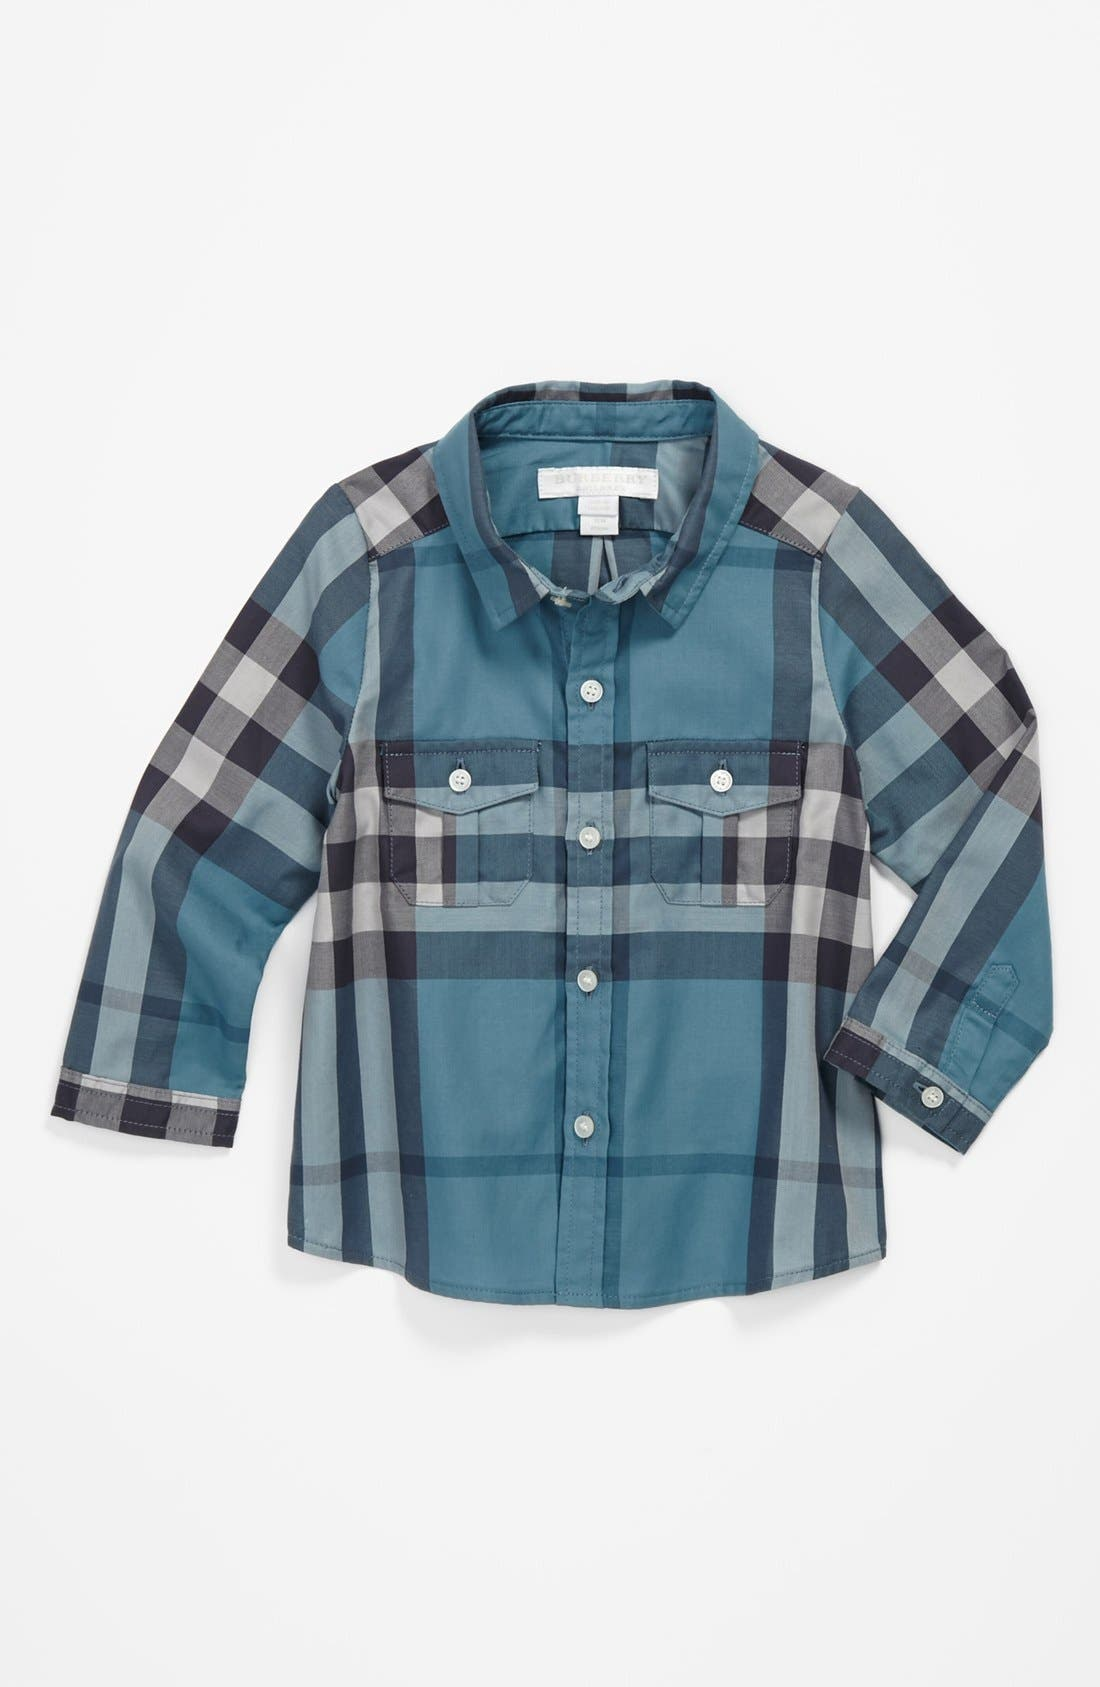 Alternate Image 1 Selected - Burberry 'Trent' Check Shirt (Toddler Boys)